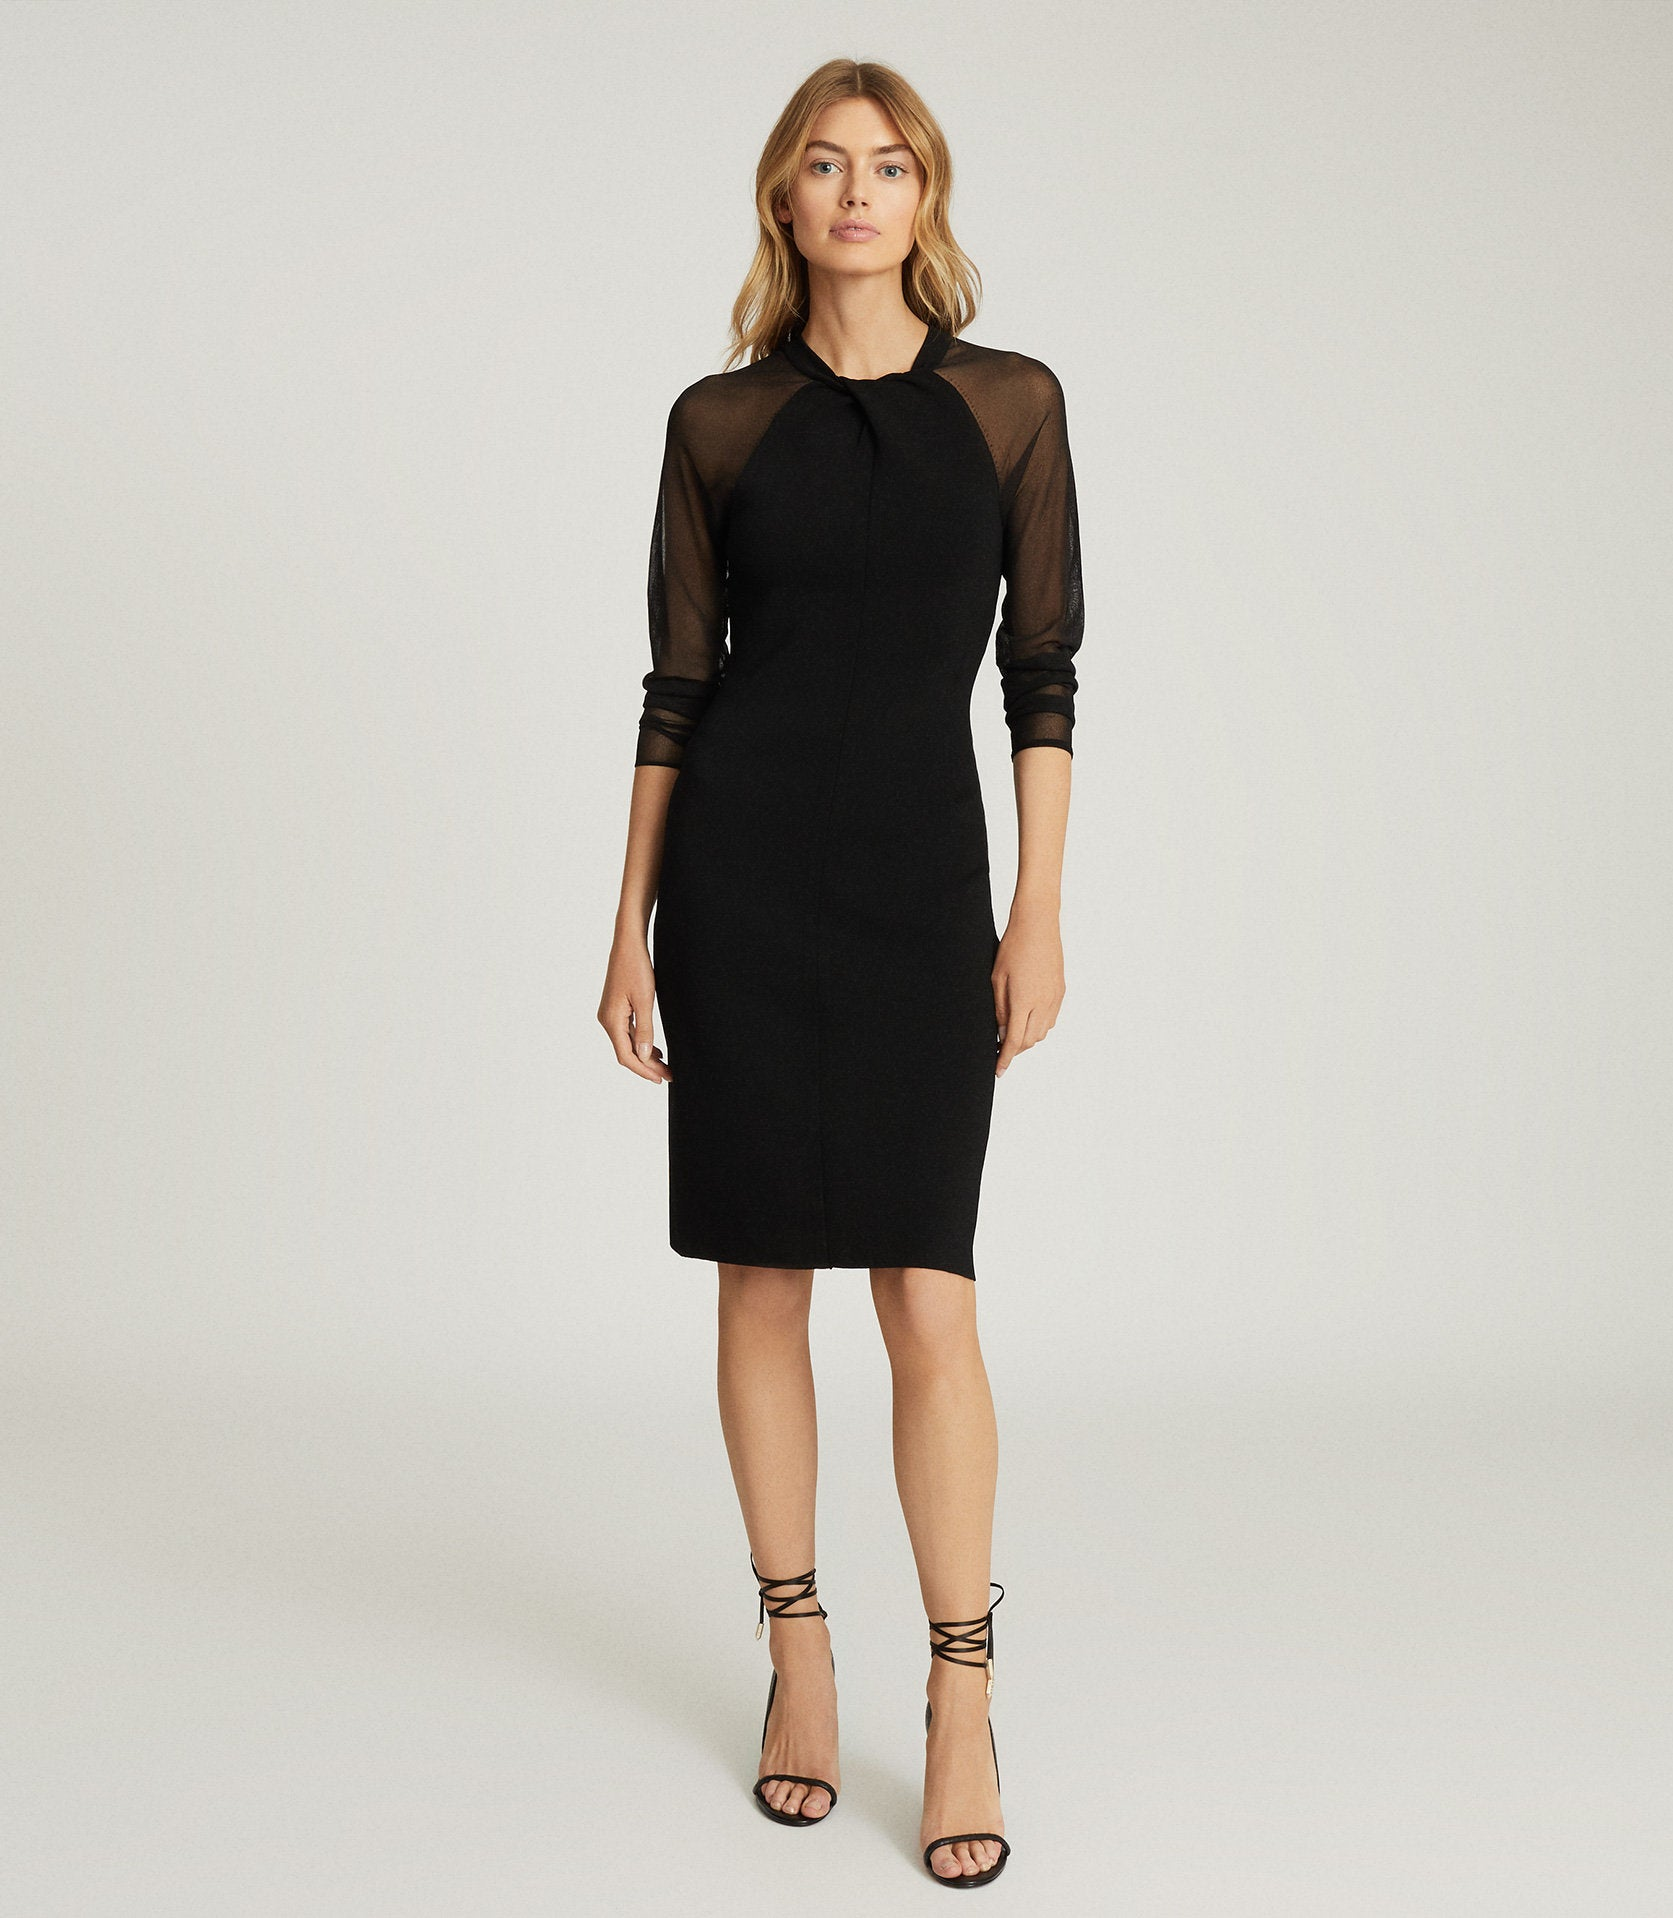 reiss black dress